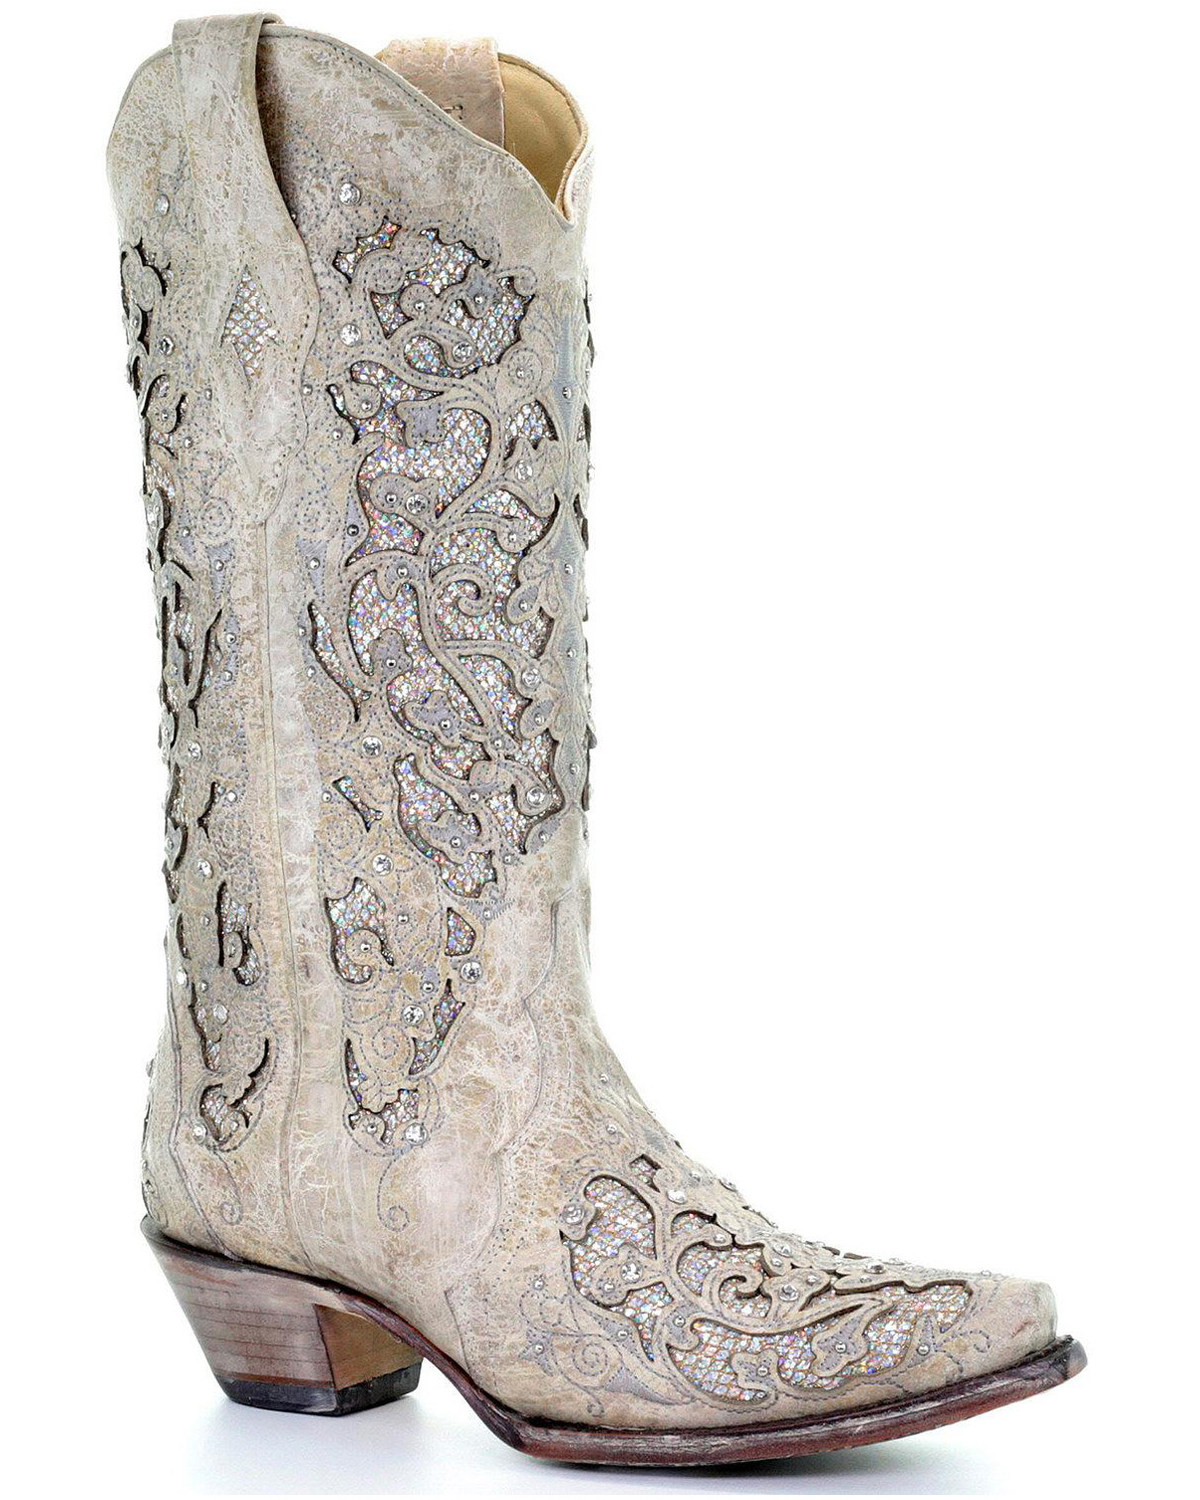 Creative Womenu0026#39;s Corral Abstract Shorty Boots - Tan